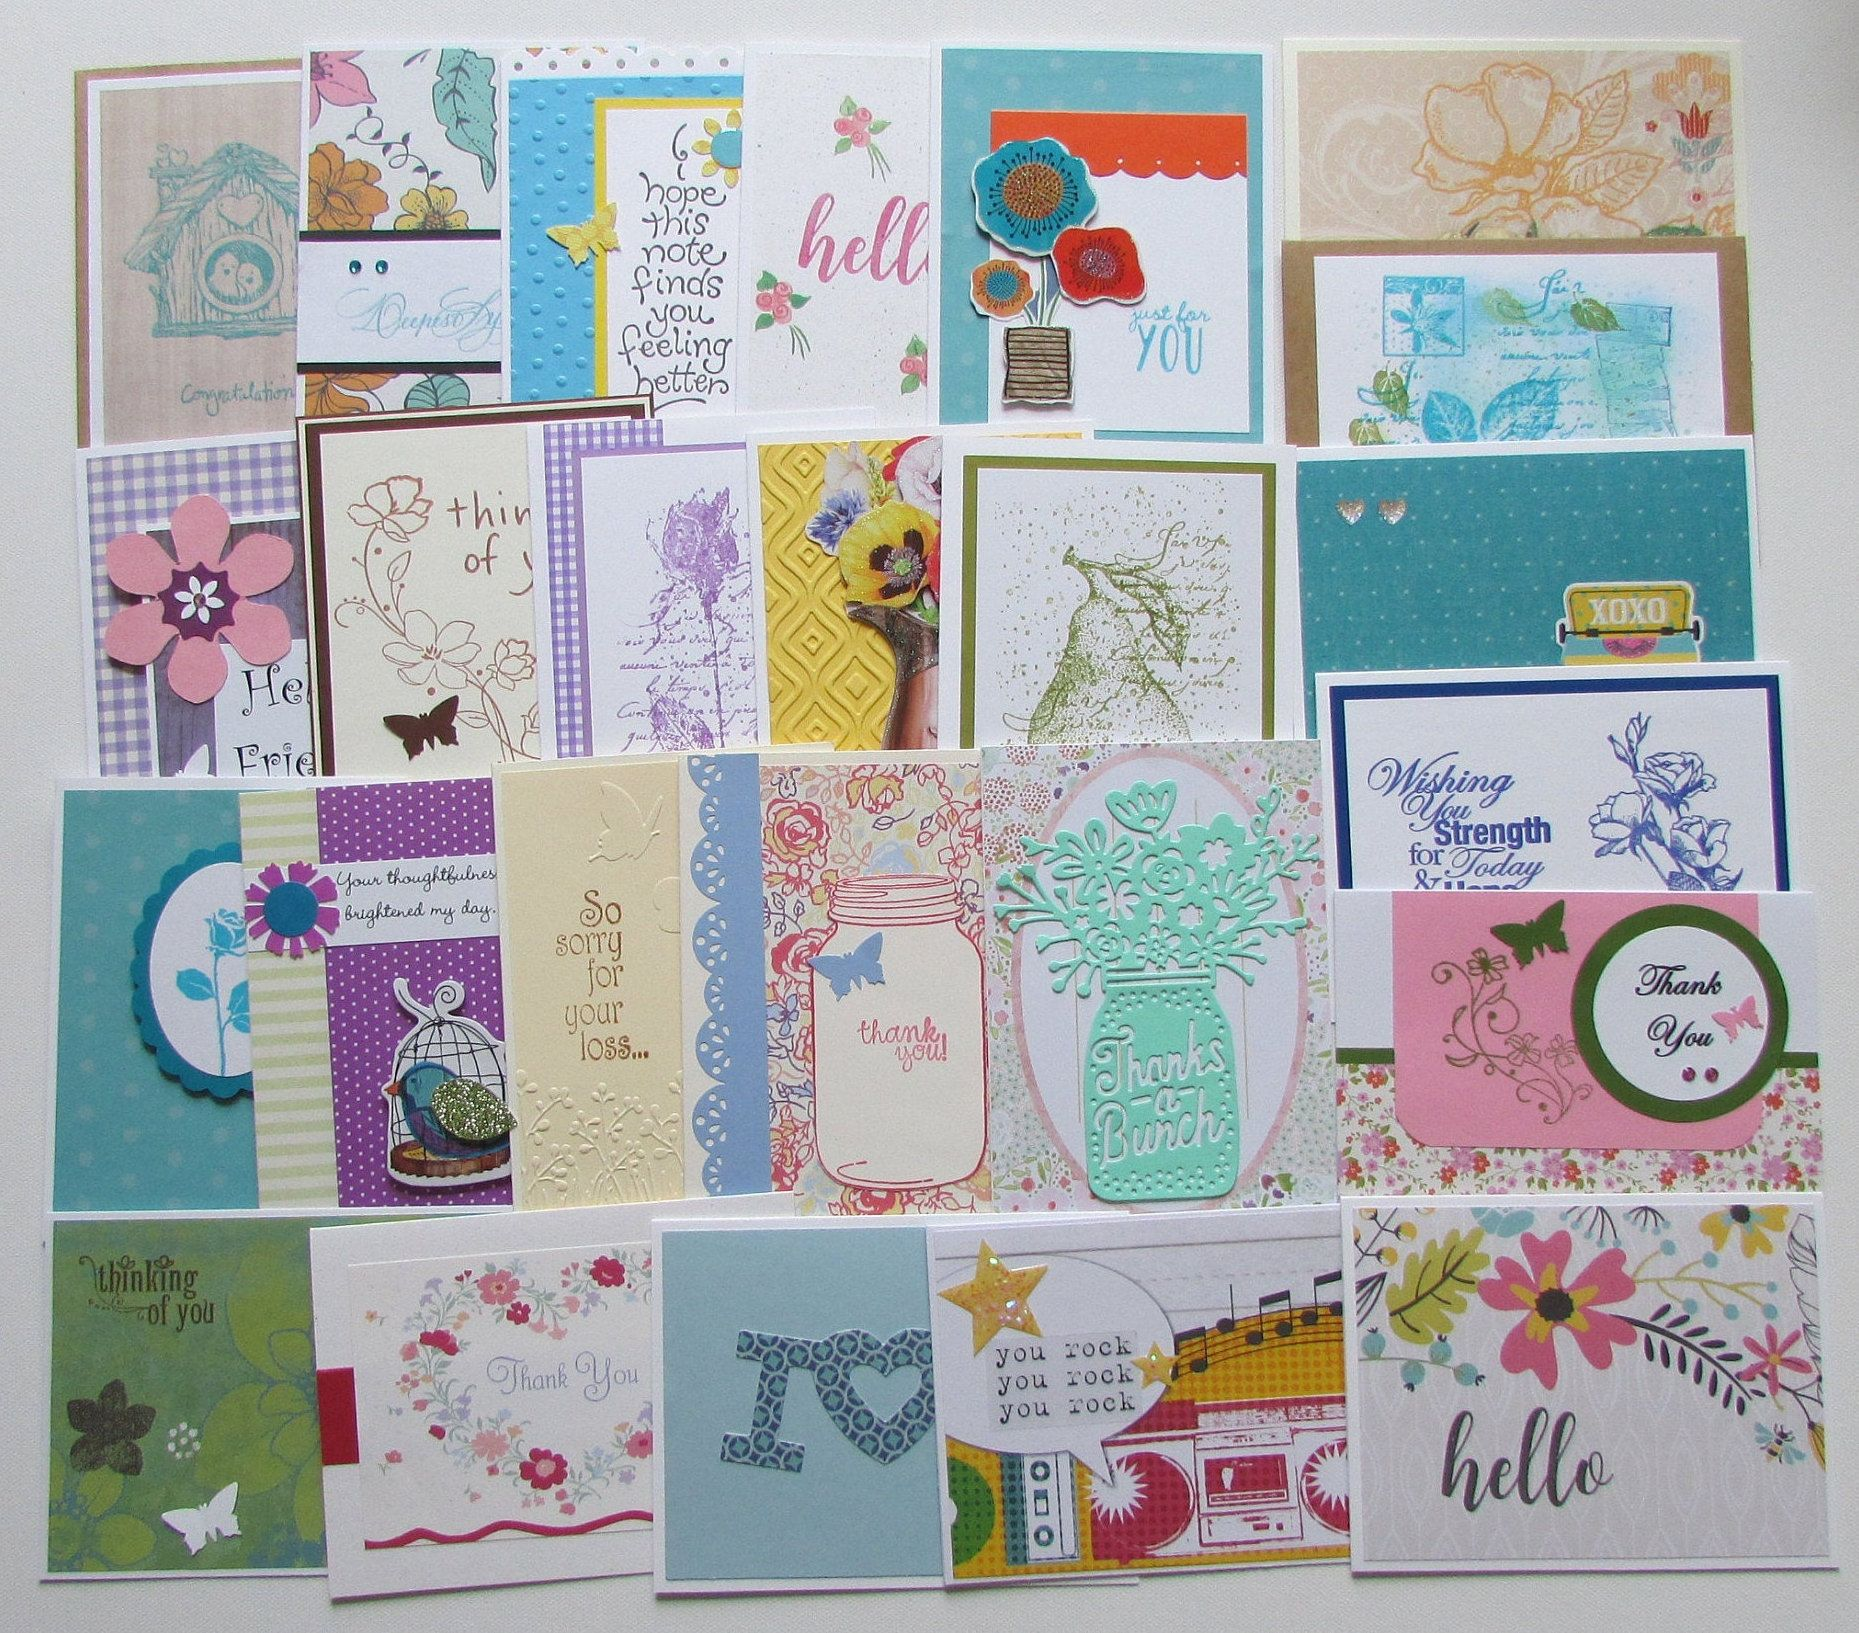 Pin By Joy Post On Cards Handmade Cards Handmade Hello Cards Cards